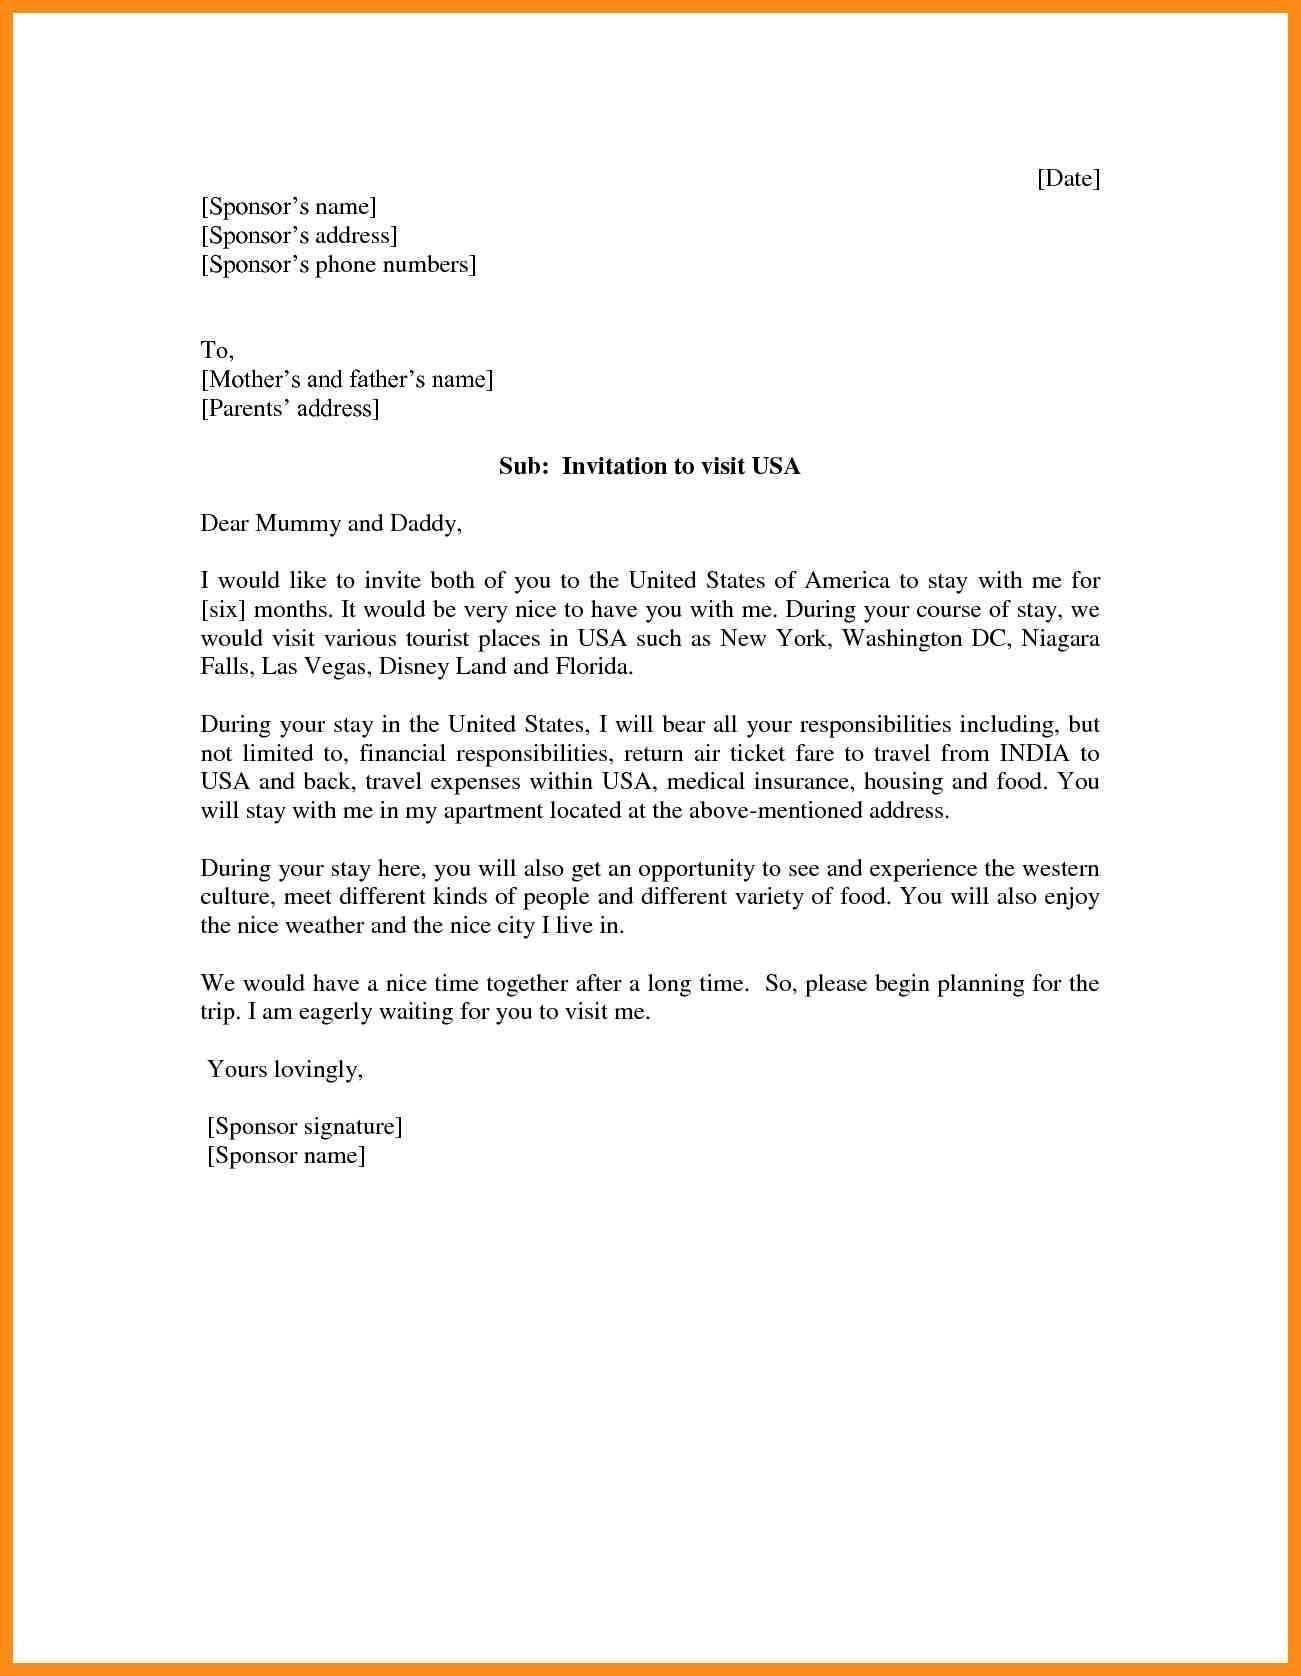 Sample Letter To Invite Someone To Visit Usa from i.pinimg.com